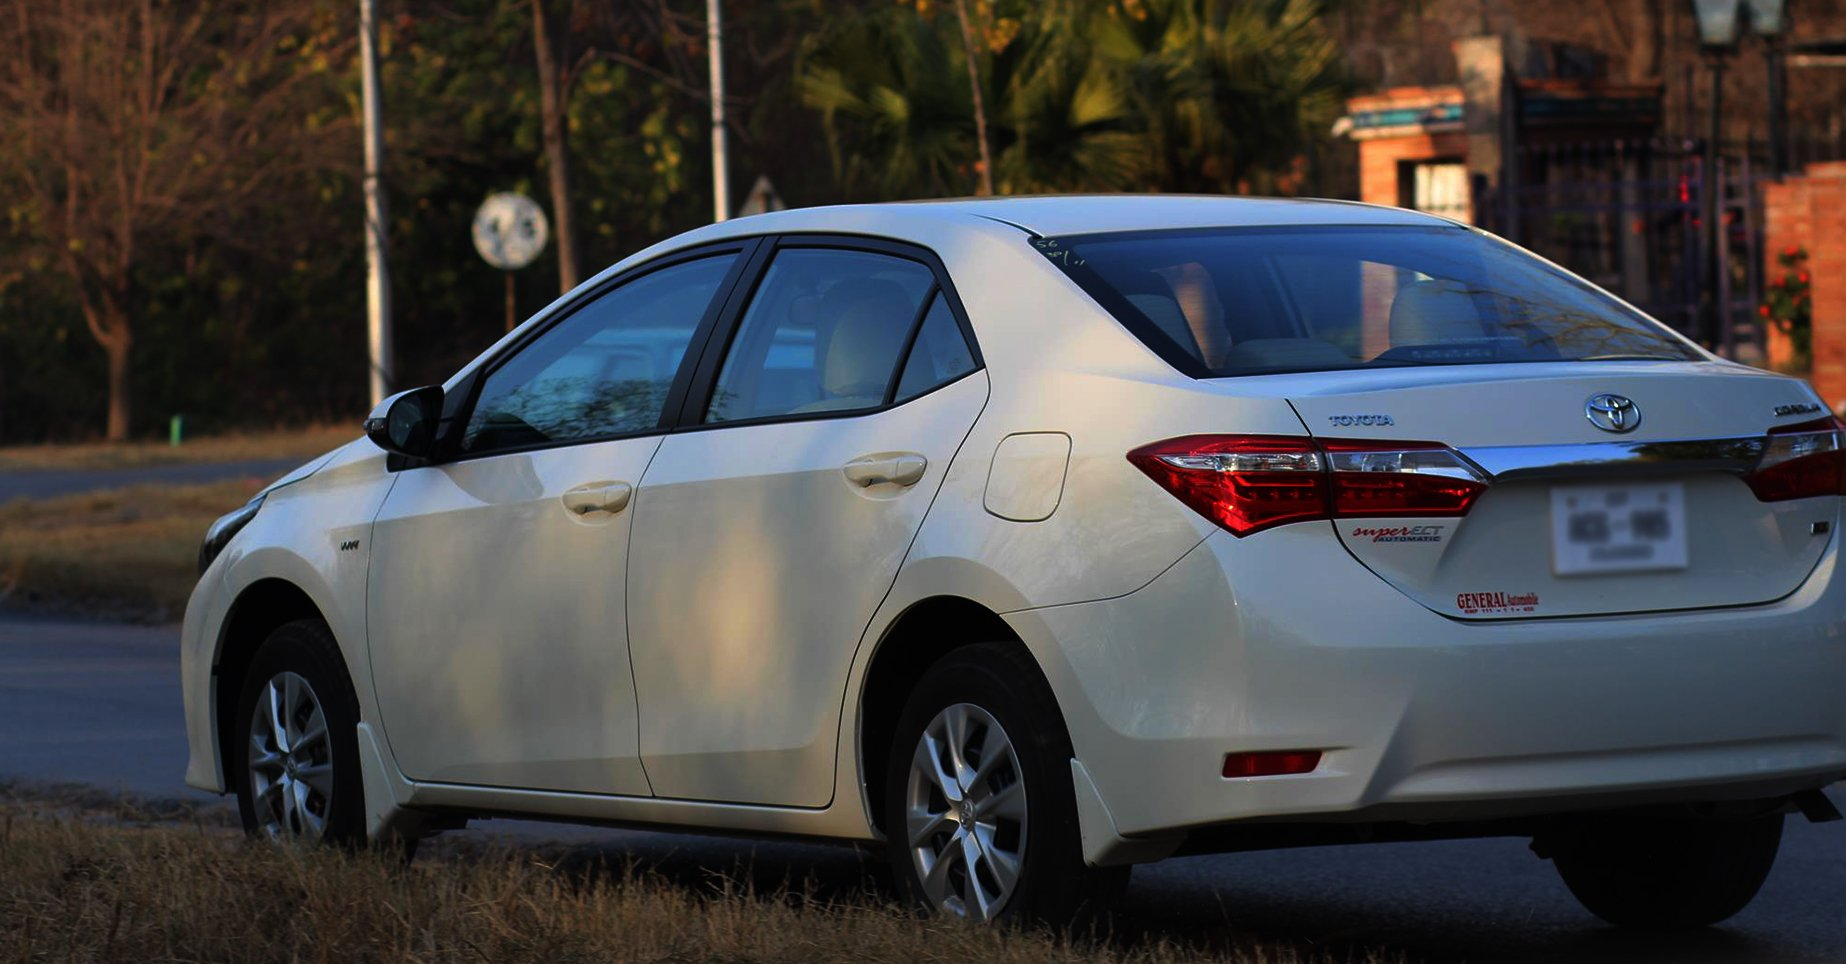 Pakistan Car Rentals